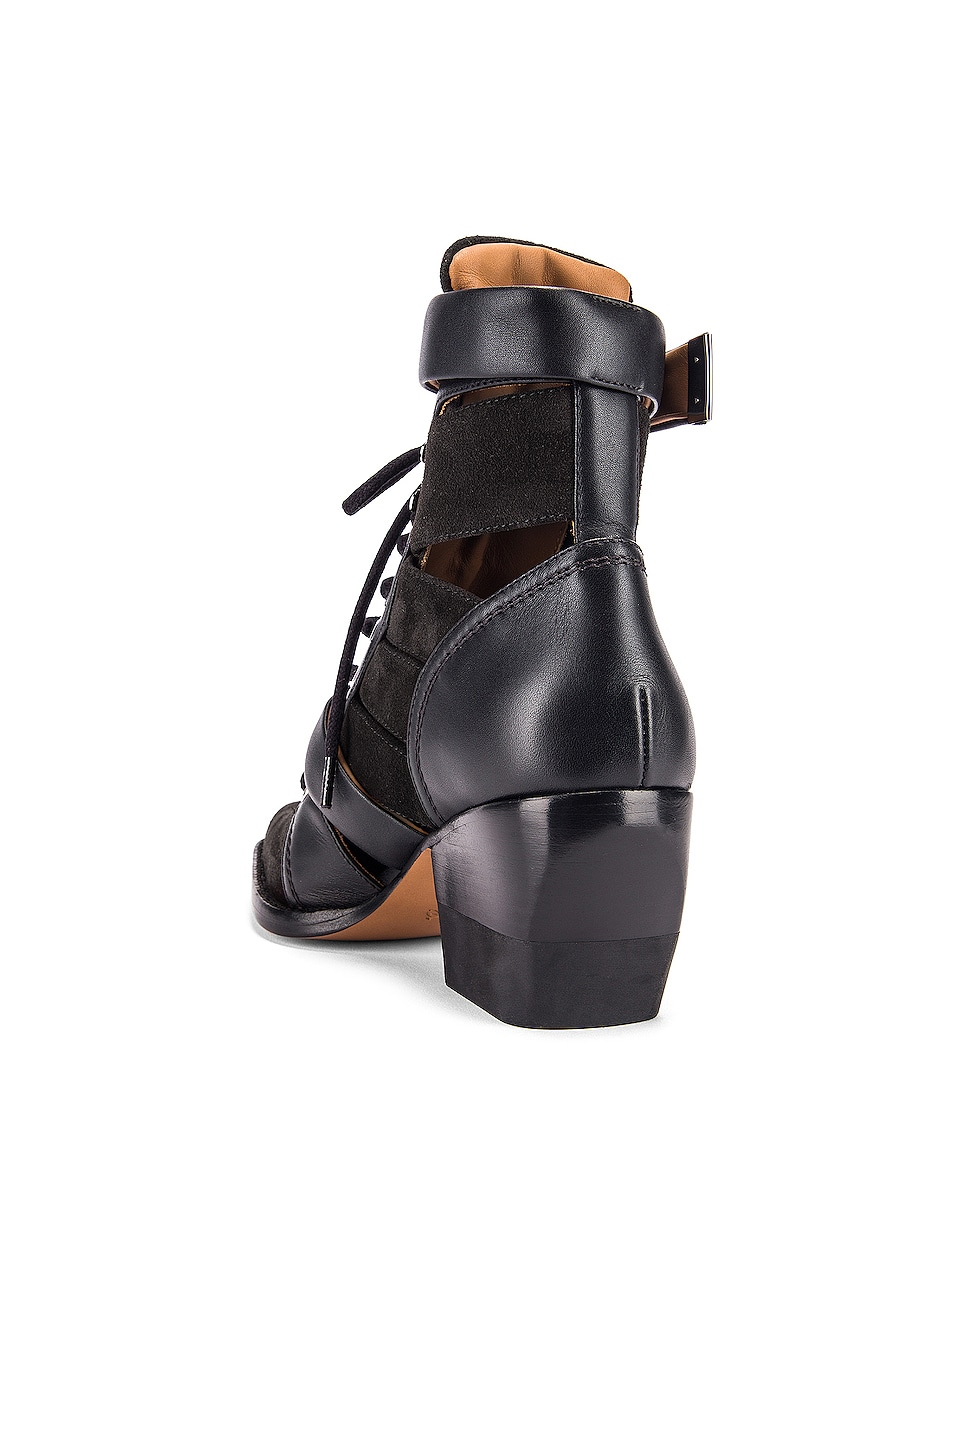 Image 3 of Chloe Lace Up Buckle Boots in Charcoal Black